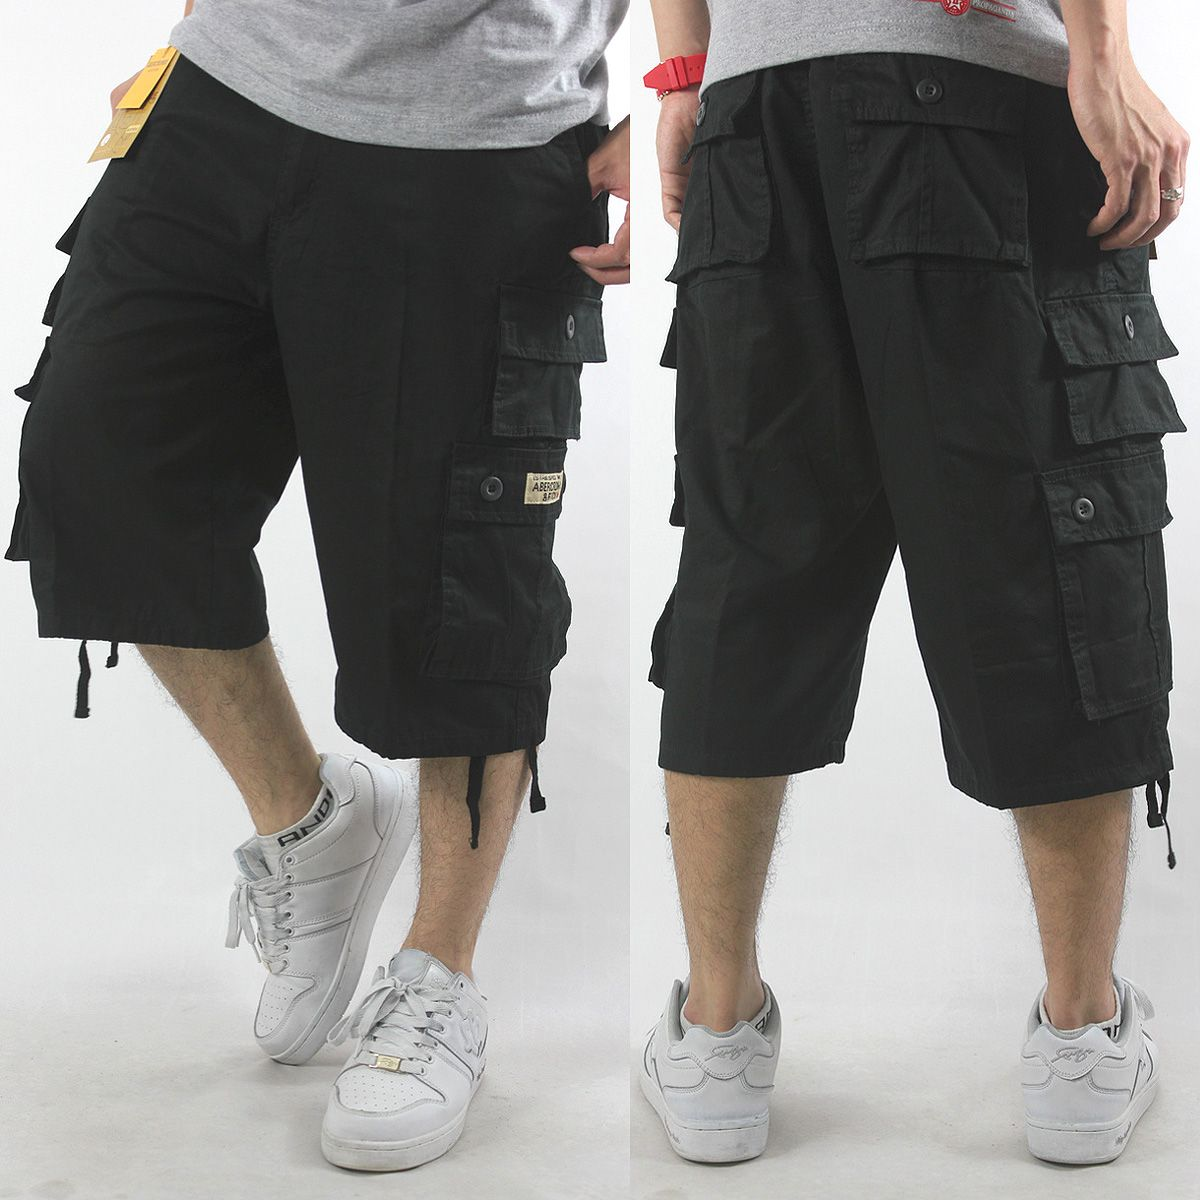 Mens Casual Fashion | 2013 Casual Fashion Mens Cargo Shorts Plus ...